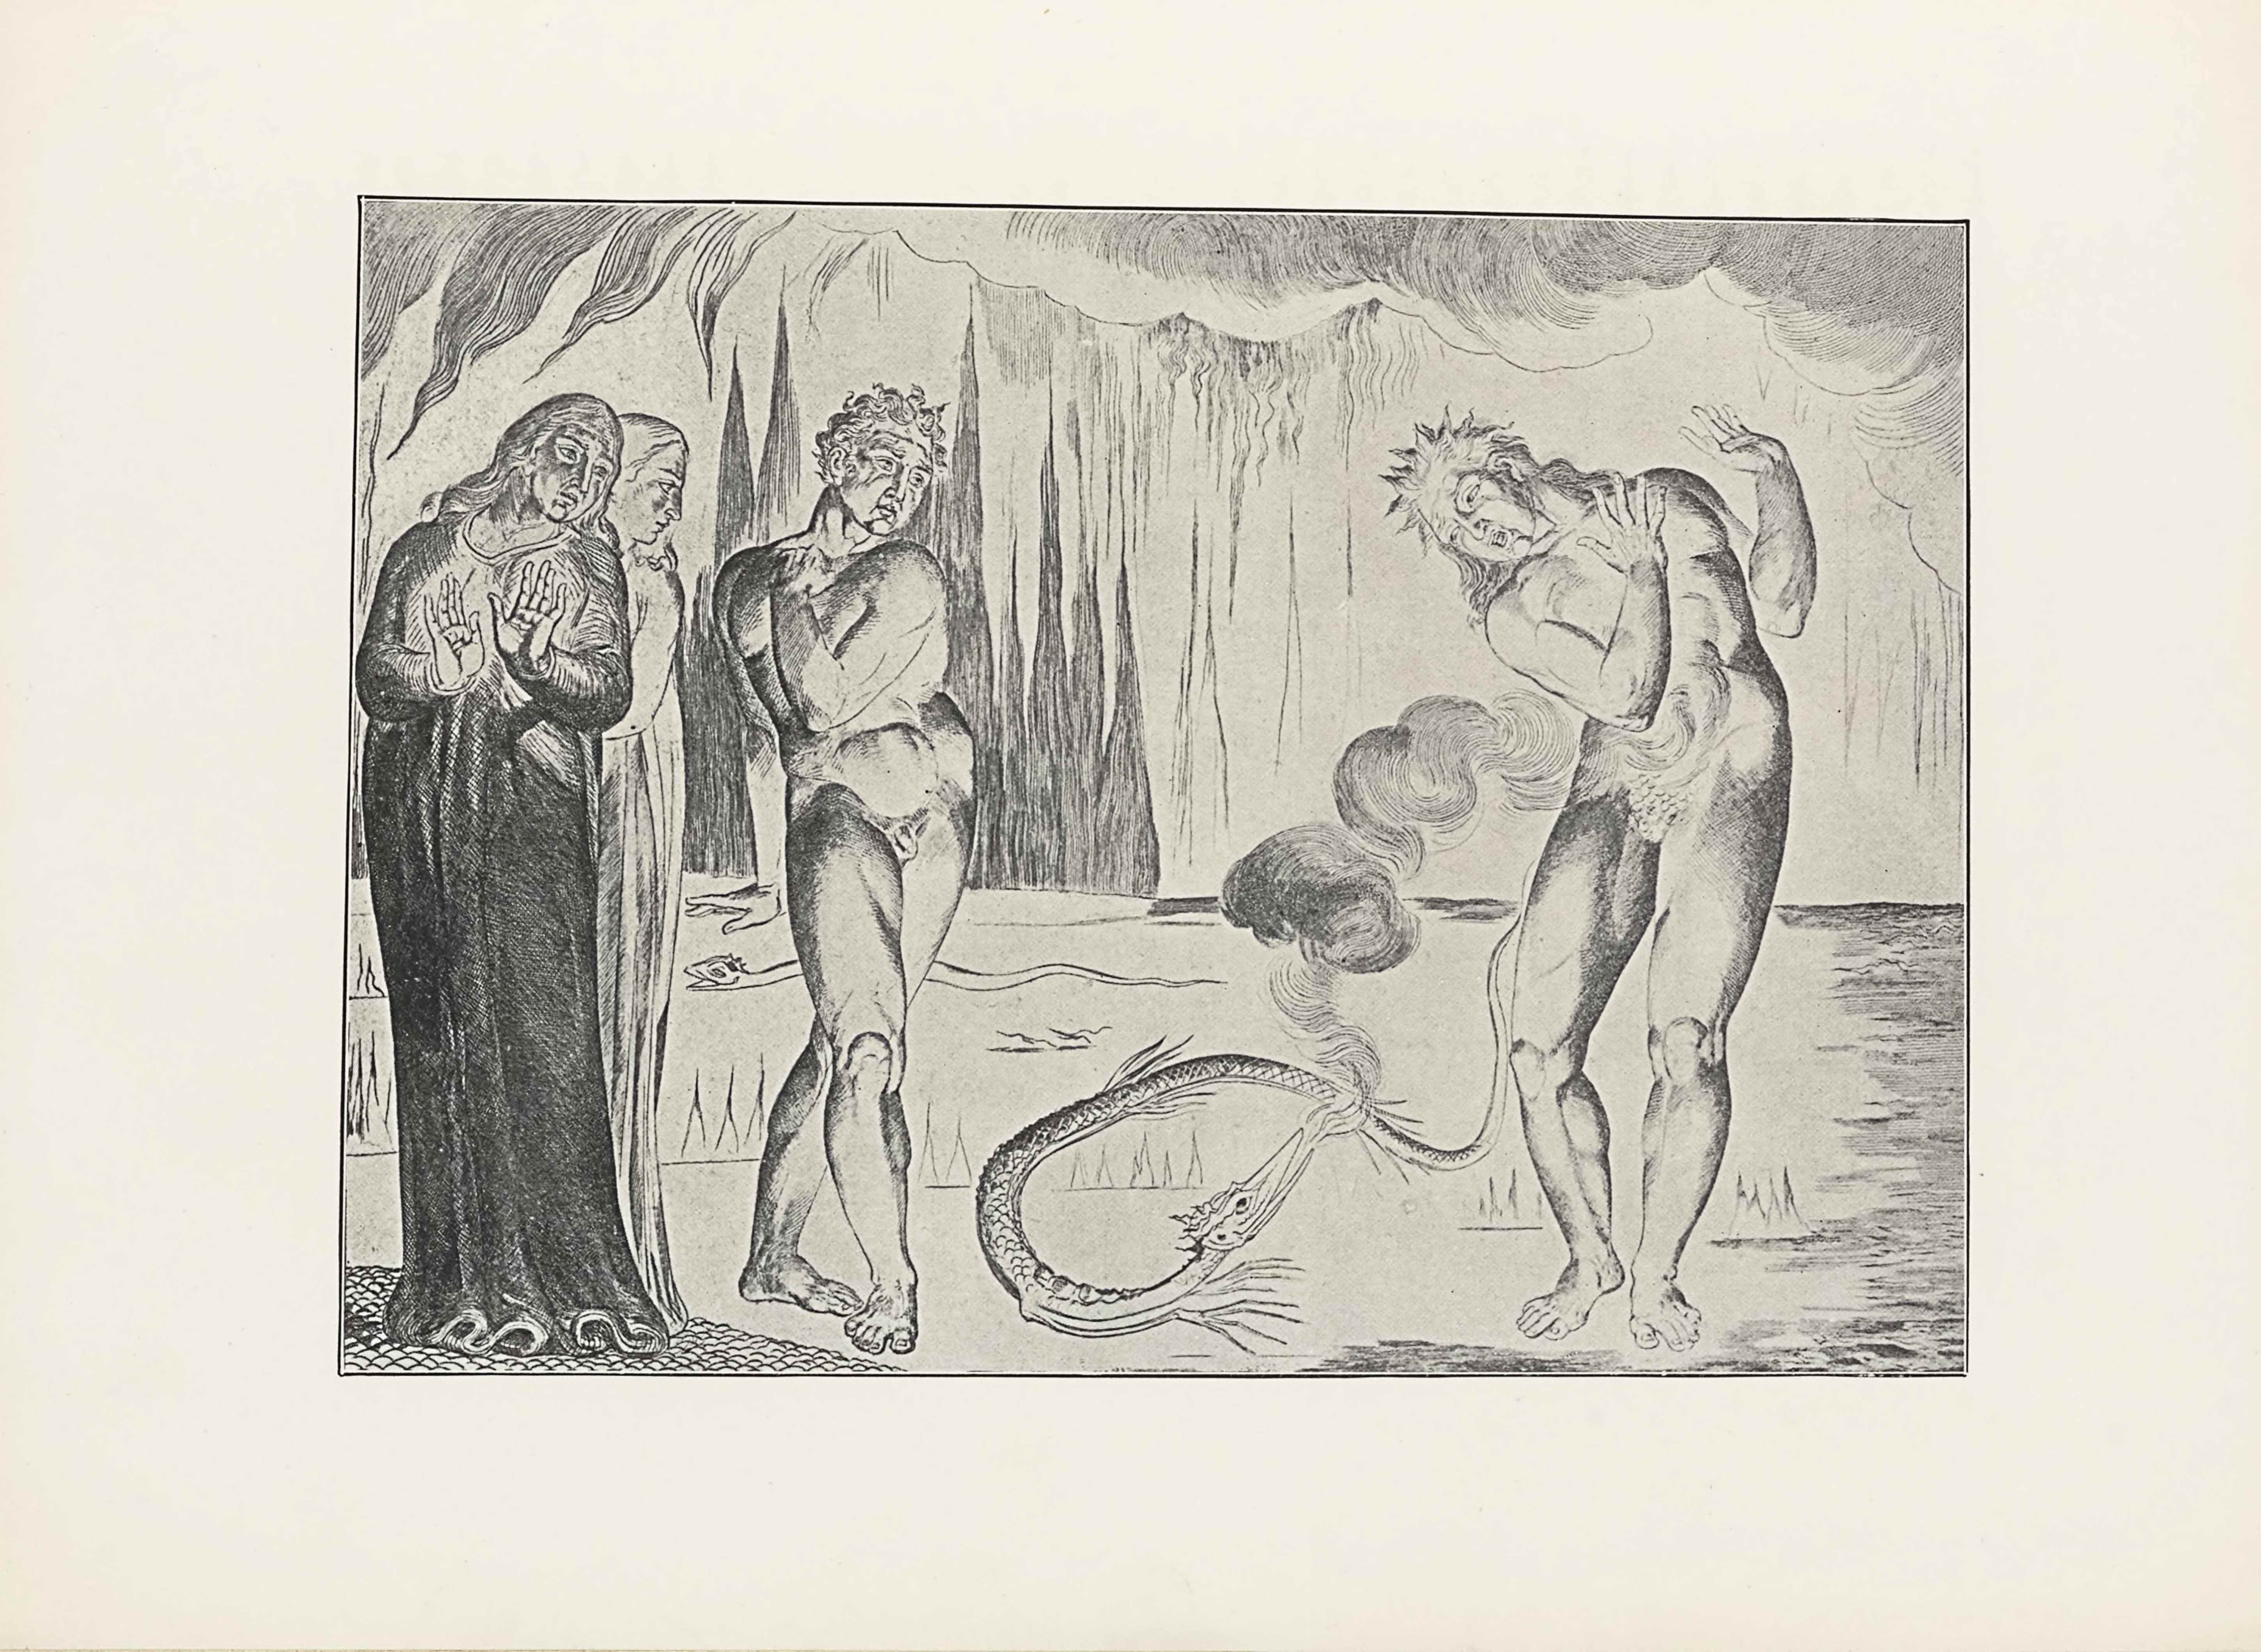 "This halftone reproduction of Blake's engraving for Dante's Inferno is in landscape orientation. The image shows four figures in hell; three on the left watch a fourth on the right being attacked by a serpent. On the far left are two robed figures, likely Dante and Virgil. The first figure on the left is standing in the foreground and rises to three-quarters up the page in height. The figure, likely Dante, is wearing a long and dark robe. His body is facing the viewer with his head turned towards the right, giving a three-quarters profile. His hands are raised up at a ninety degree angle with his palms facing the viewer. His eyes look towards the snake attacking the naked figure to his right. There is a second robed man standing behind and to the right of the first. He is visible in profile, with his face looking to the right toward the serpent attacking the naked man (Buoso Donati). To the right of the two robed figures are two naked men. The first stands close to the robed pair, with his body facing the viewer, but his head is turned to look down at the snake on the ground. His right leg is crossed in front of his left leg and his toes are pointed in to face each other. He has short curly hair. His left arm is pulled across his body, with his left hand resting on his right shoulder. His right arm is pulled behind his back. To the right of him on the ground is the serpent. It is scaled and its body is twisted in a loop, with the head and tail on the right. The serpent has its head lifted to look up at a naked figure standing to its right. The snake's head is long and the mouth is open with smoke rising out of it in puffs up and to the right. The naked figure to the right of the snake is standing with the body facing the viewer. The male figure is in a defensive posture, with the right leg lifted slightly, pulled away from the serpent. The figure's arms are lifted in front in a ninety degree angle. The figure's upper body is leaned down towards the serpent, with the face turned to look down at it, his mouth is opened in an ""o"" shape. The figure has spiked hair on the top of the head with longer pieces falling down the back. The ground on which all of the figures and snake rest is flat and plain, with a small design of rocky ground under the feet of the robed men. In the mid-ground is more flat land with intermittent pieces of jagged rock. There is also another snake or serpent in the mid-ground to the left of the one in the foreground. This snake is facing to the left and stretched out in a long horizontal line. At the halfway point up the height of the page is the start of the skyline. The background is made of clouds along the top edge of the page, with jagged lines rising up in the left background. Waved vertical lines are appear intermittently in the distant background."